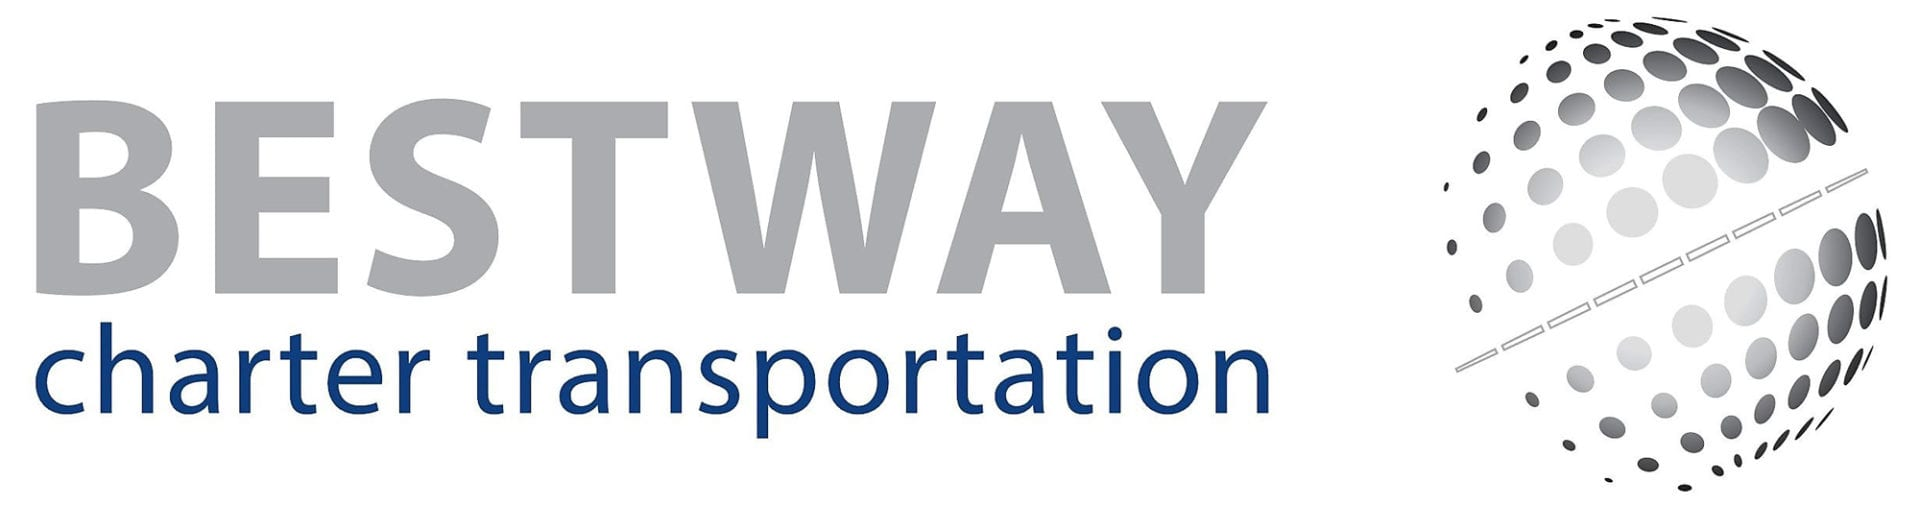 Bestwaylogo2edited